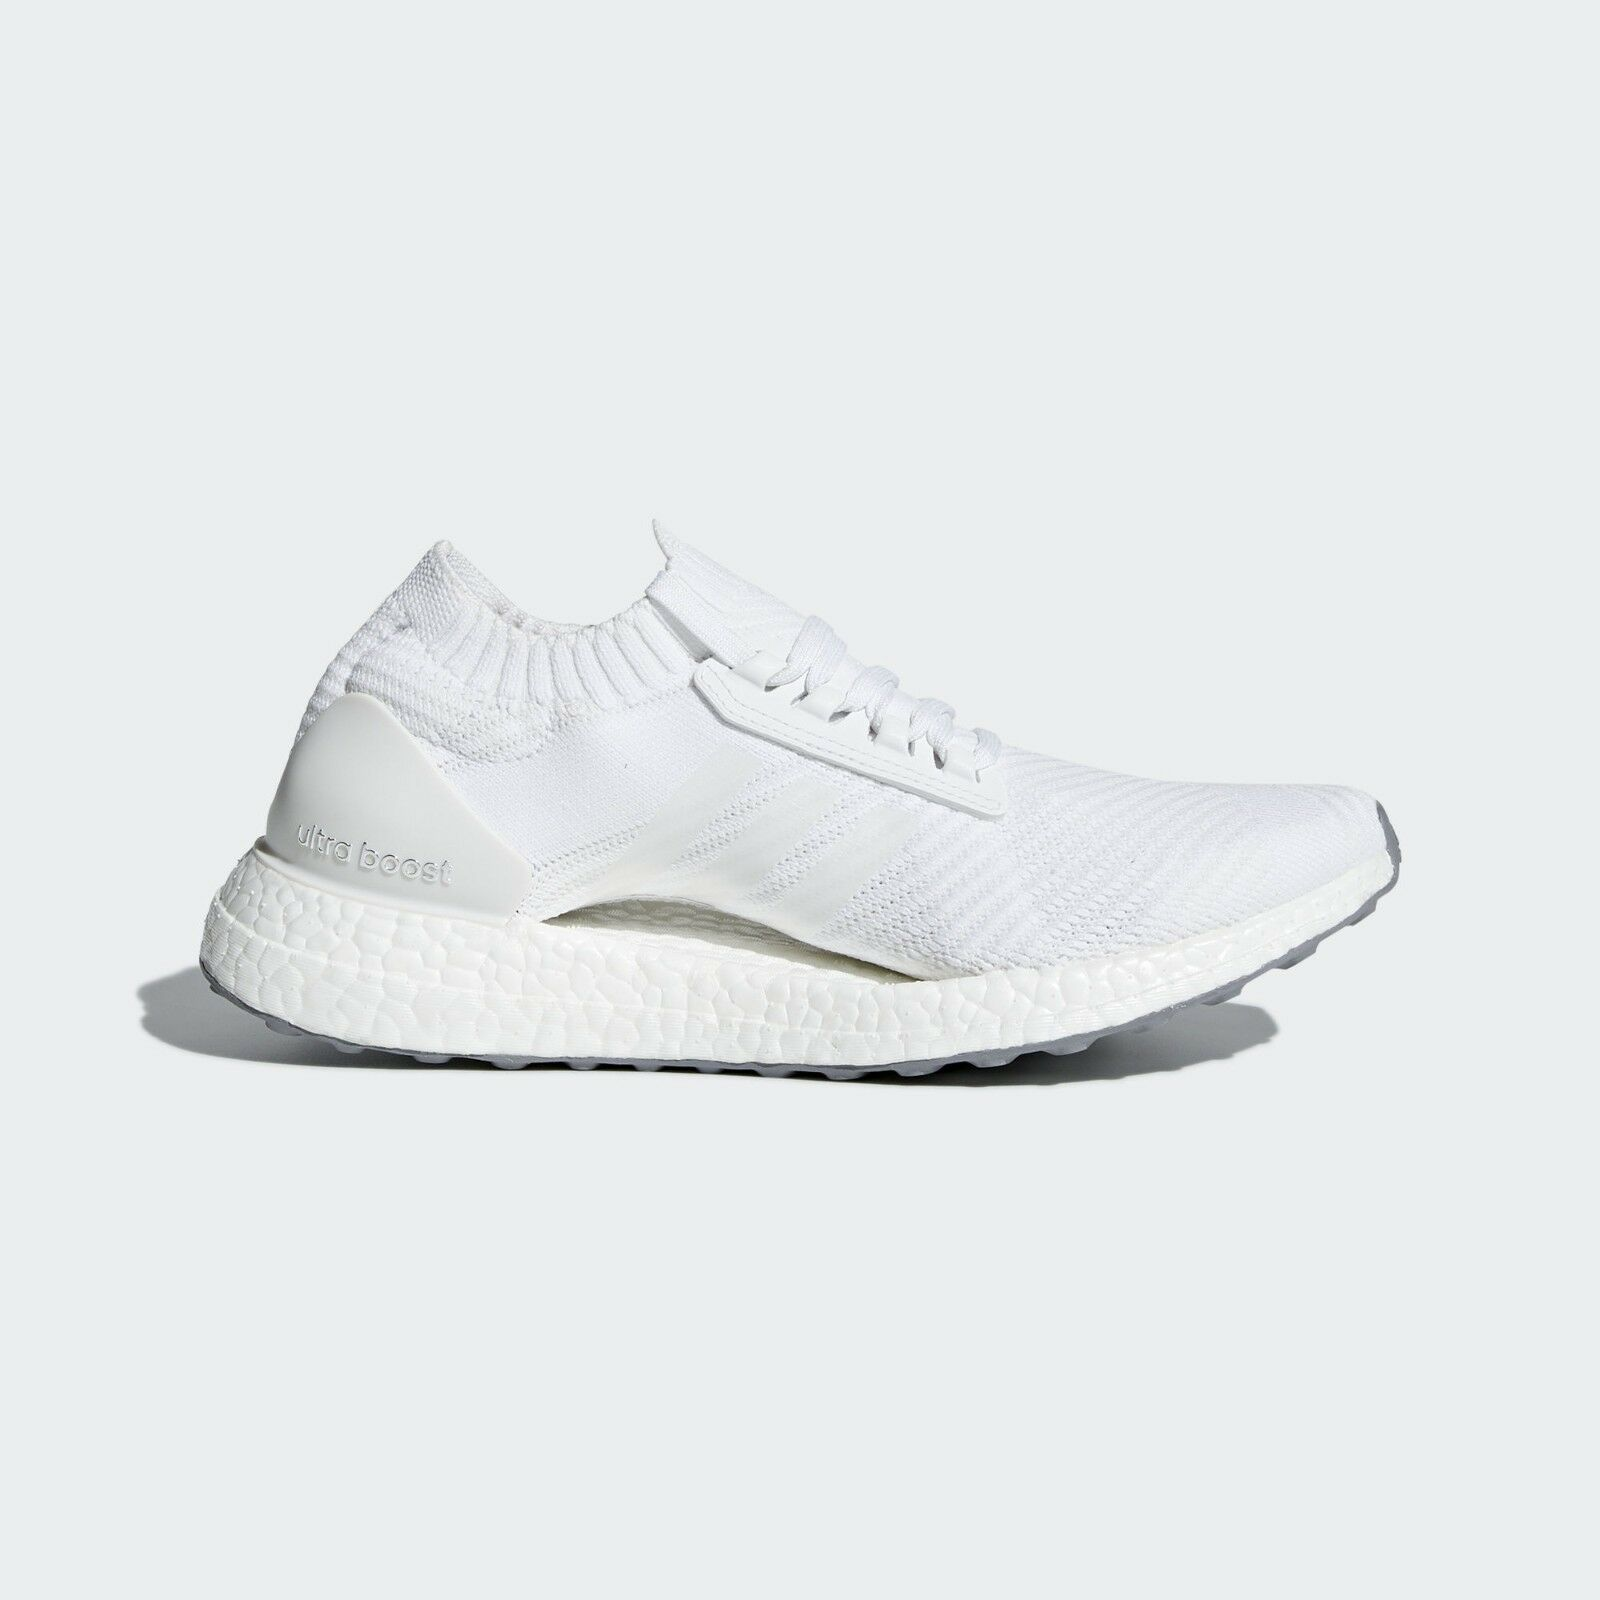 0748347b5bbda NEW WOMENS ADIDAS ULTRABOOST X SNEAKERS BB3433-SHOES-RUNNING-MULTIPLE SIZES  SIZES SIZES cae8ff